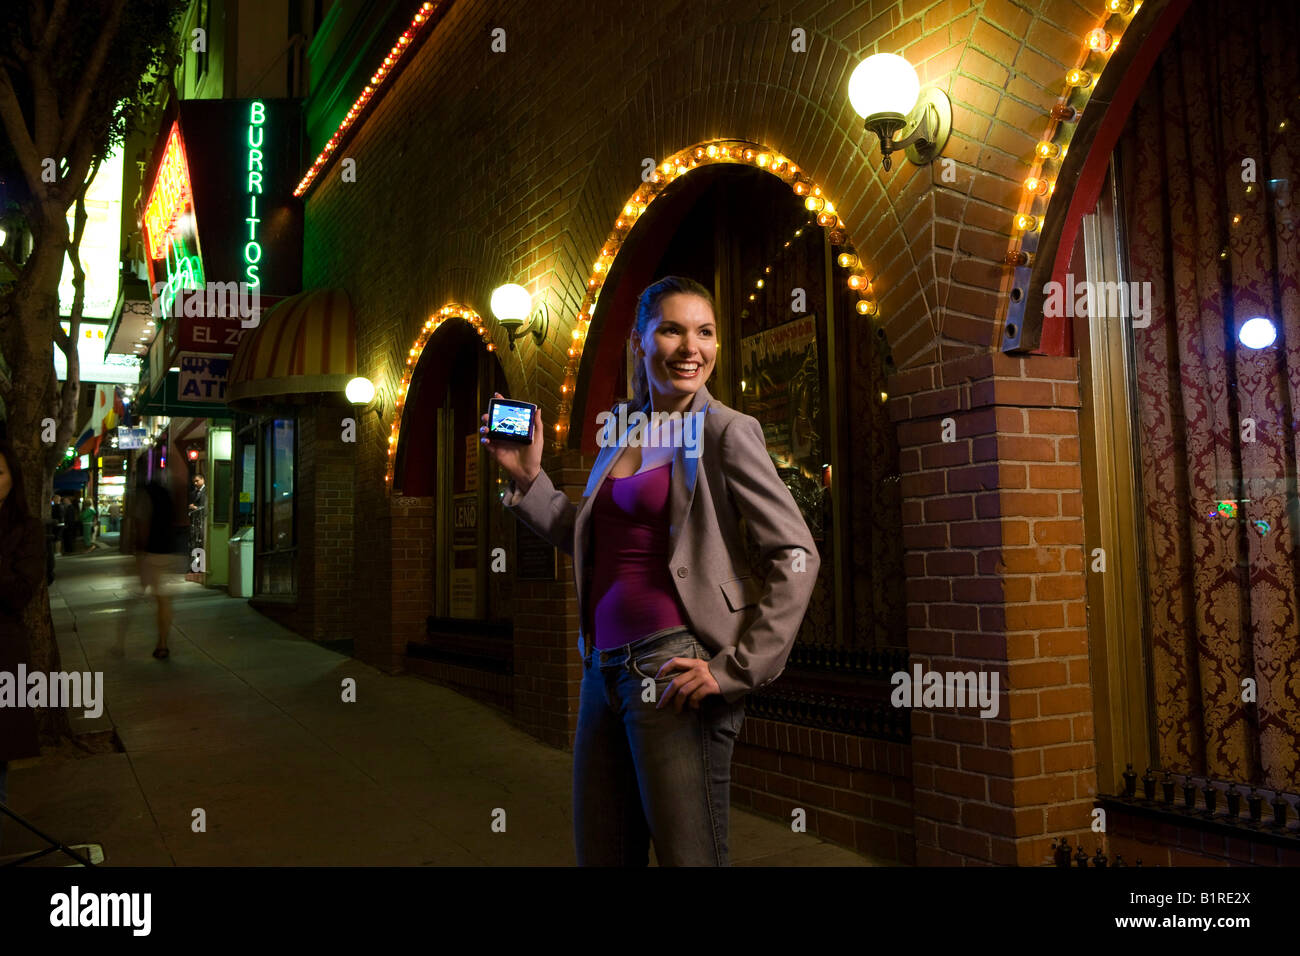 A young woman stands in a well lit street at nightfall carrying a hand held device. - Stock Image